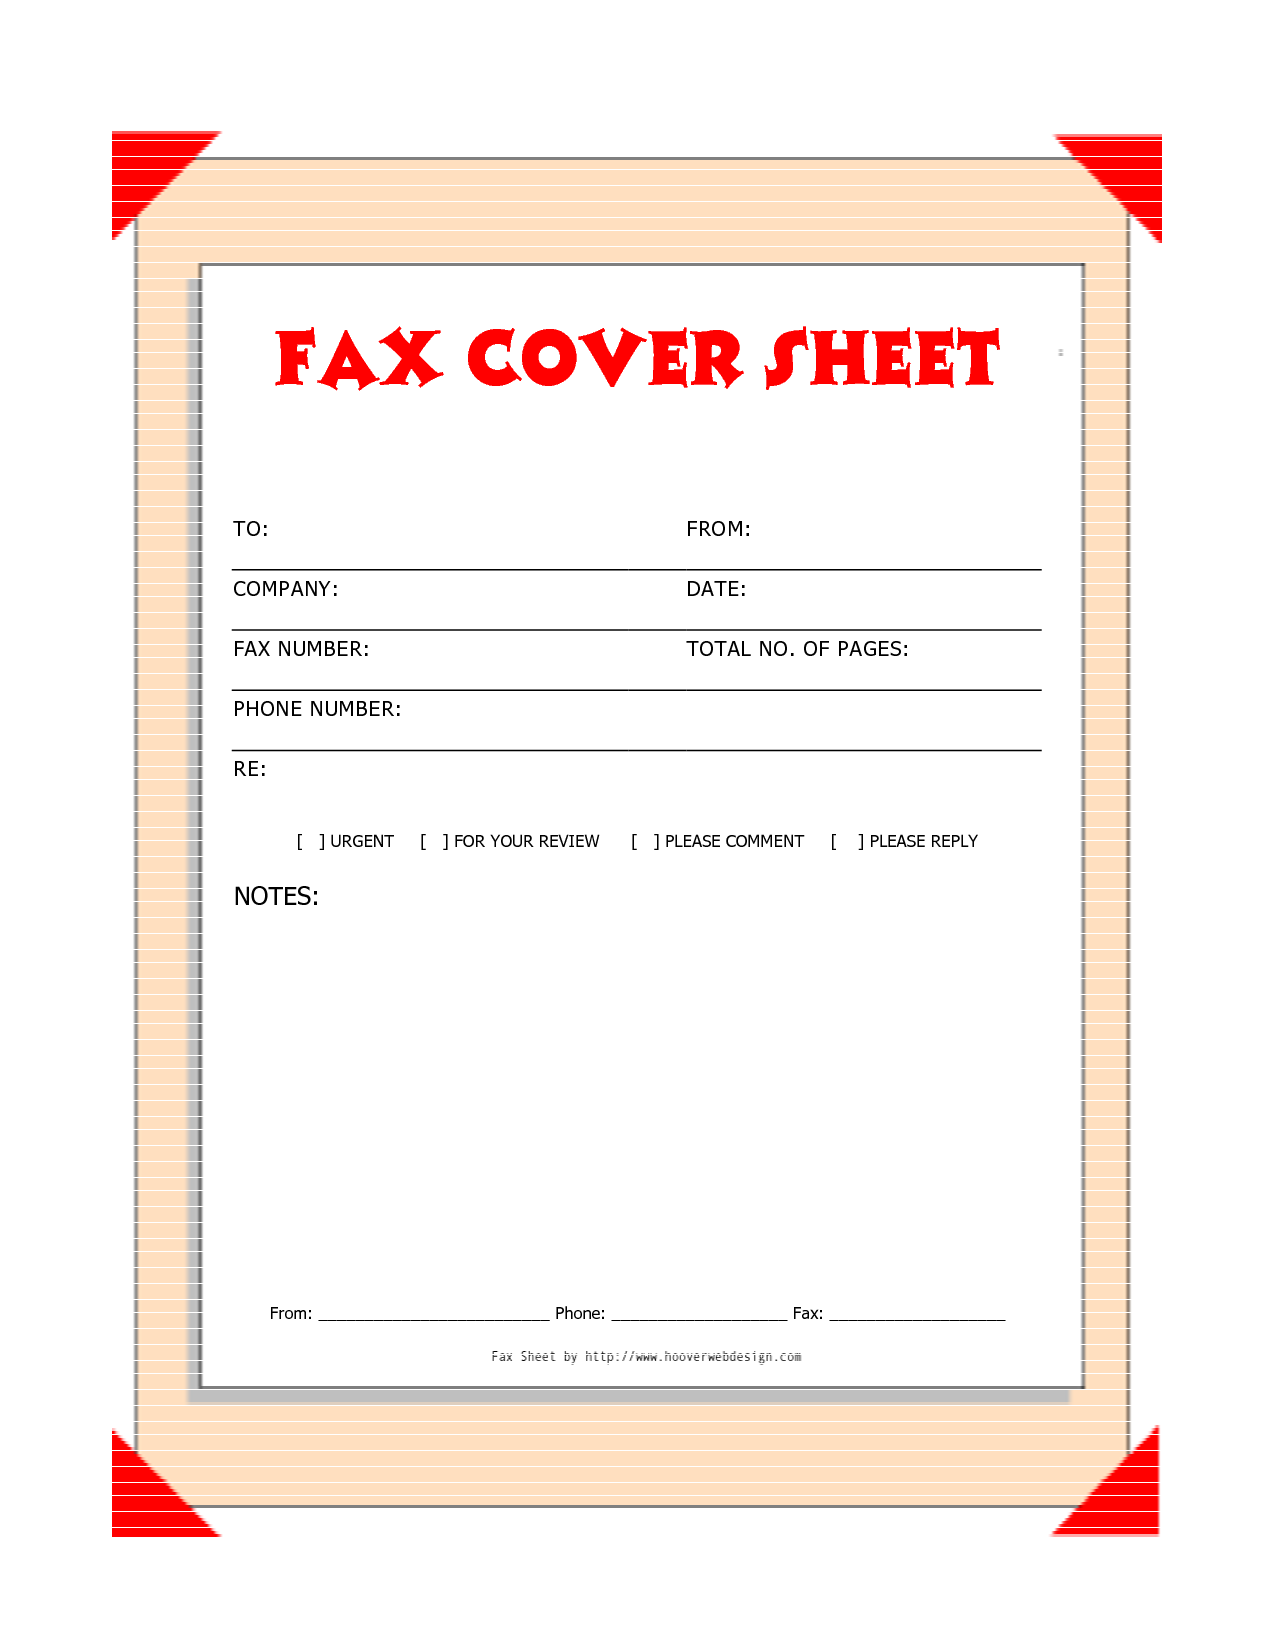 Free downloads fax covers sheets free printable fax cover sheet free downloads fax covers sheets free printable fax cover sheet template red download as pronofoot35fo Gallery